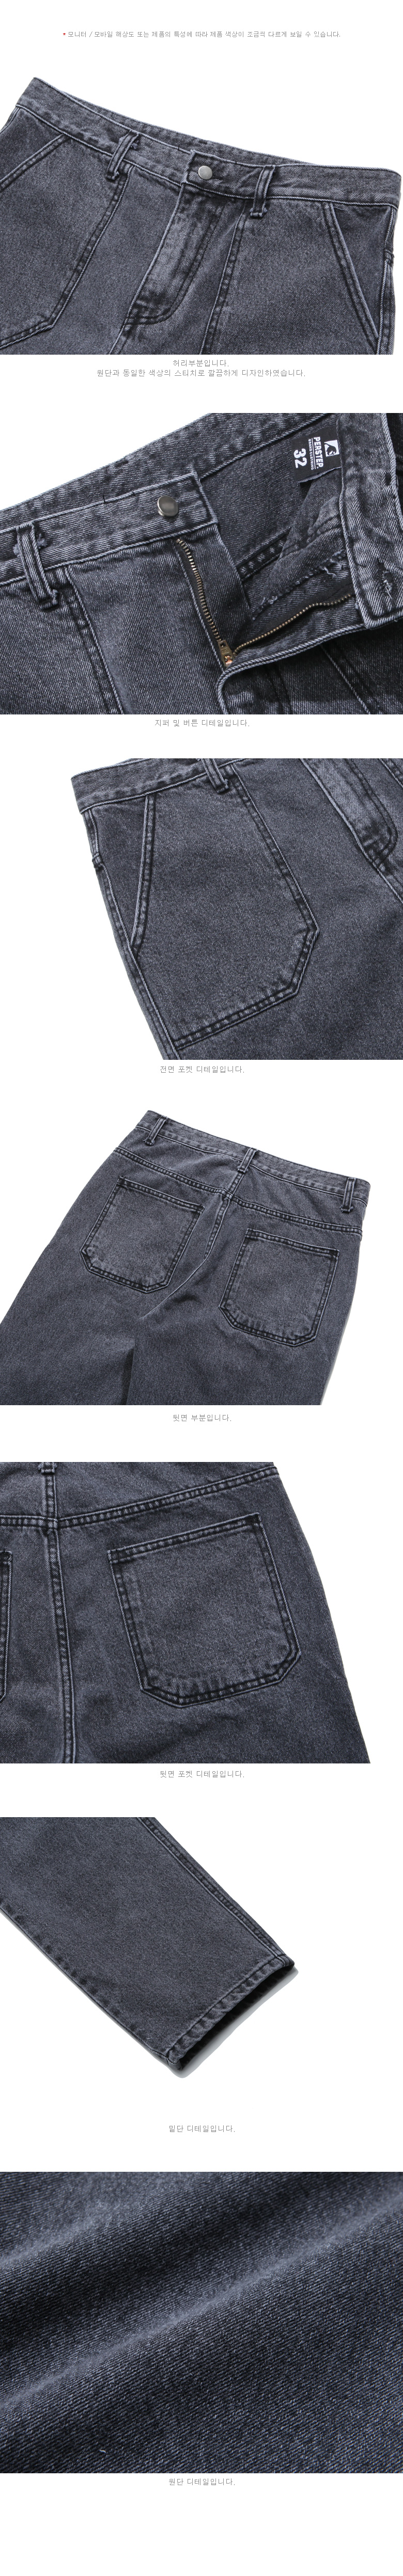 20190131_ps_complete_pant_gray_uk_02.jpg